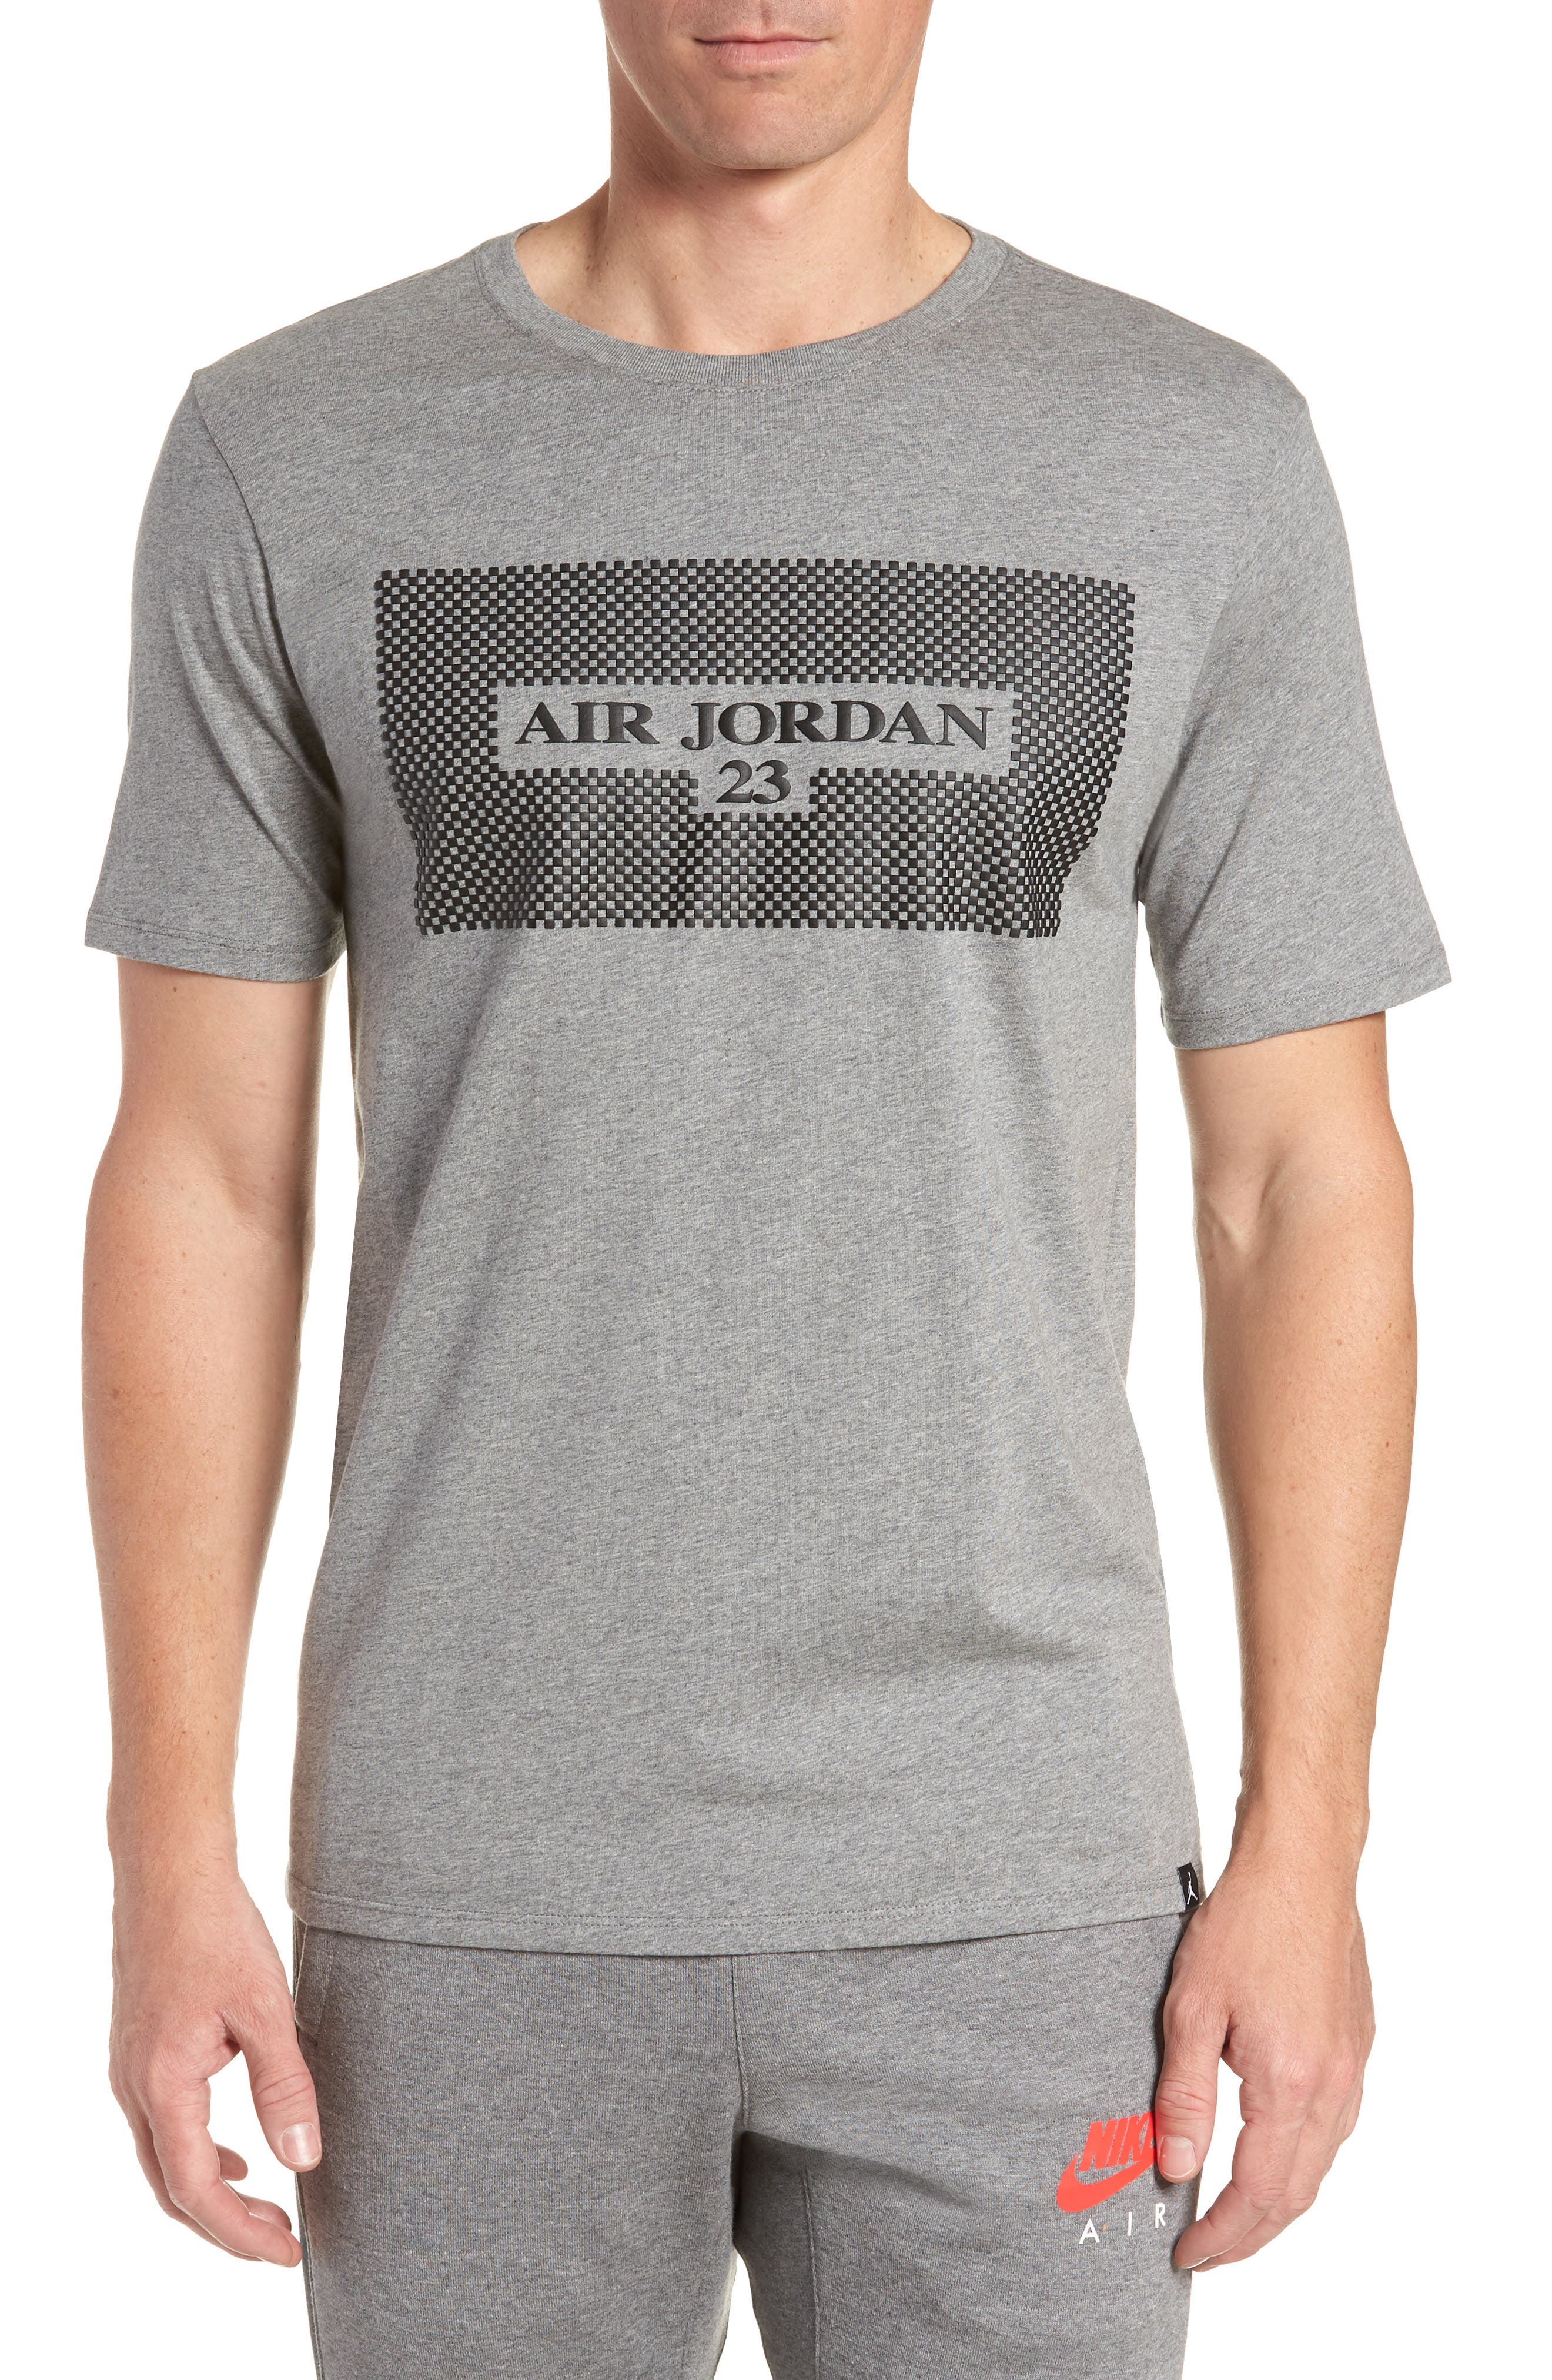 Air Jordan 23 T-Shirt,                             Main thumbnail 1, color,                             Carbon Heather/ Black